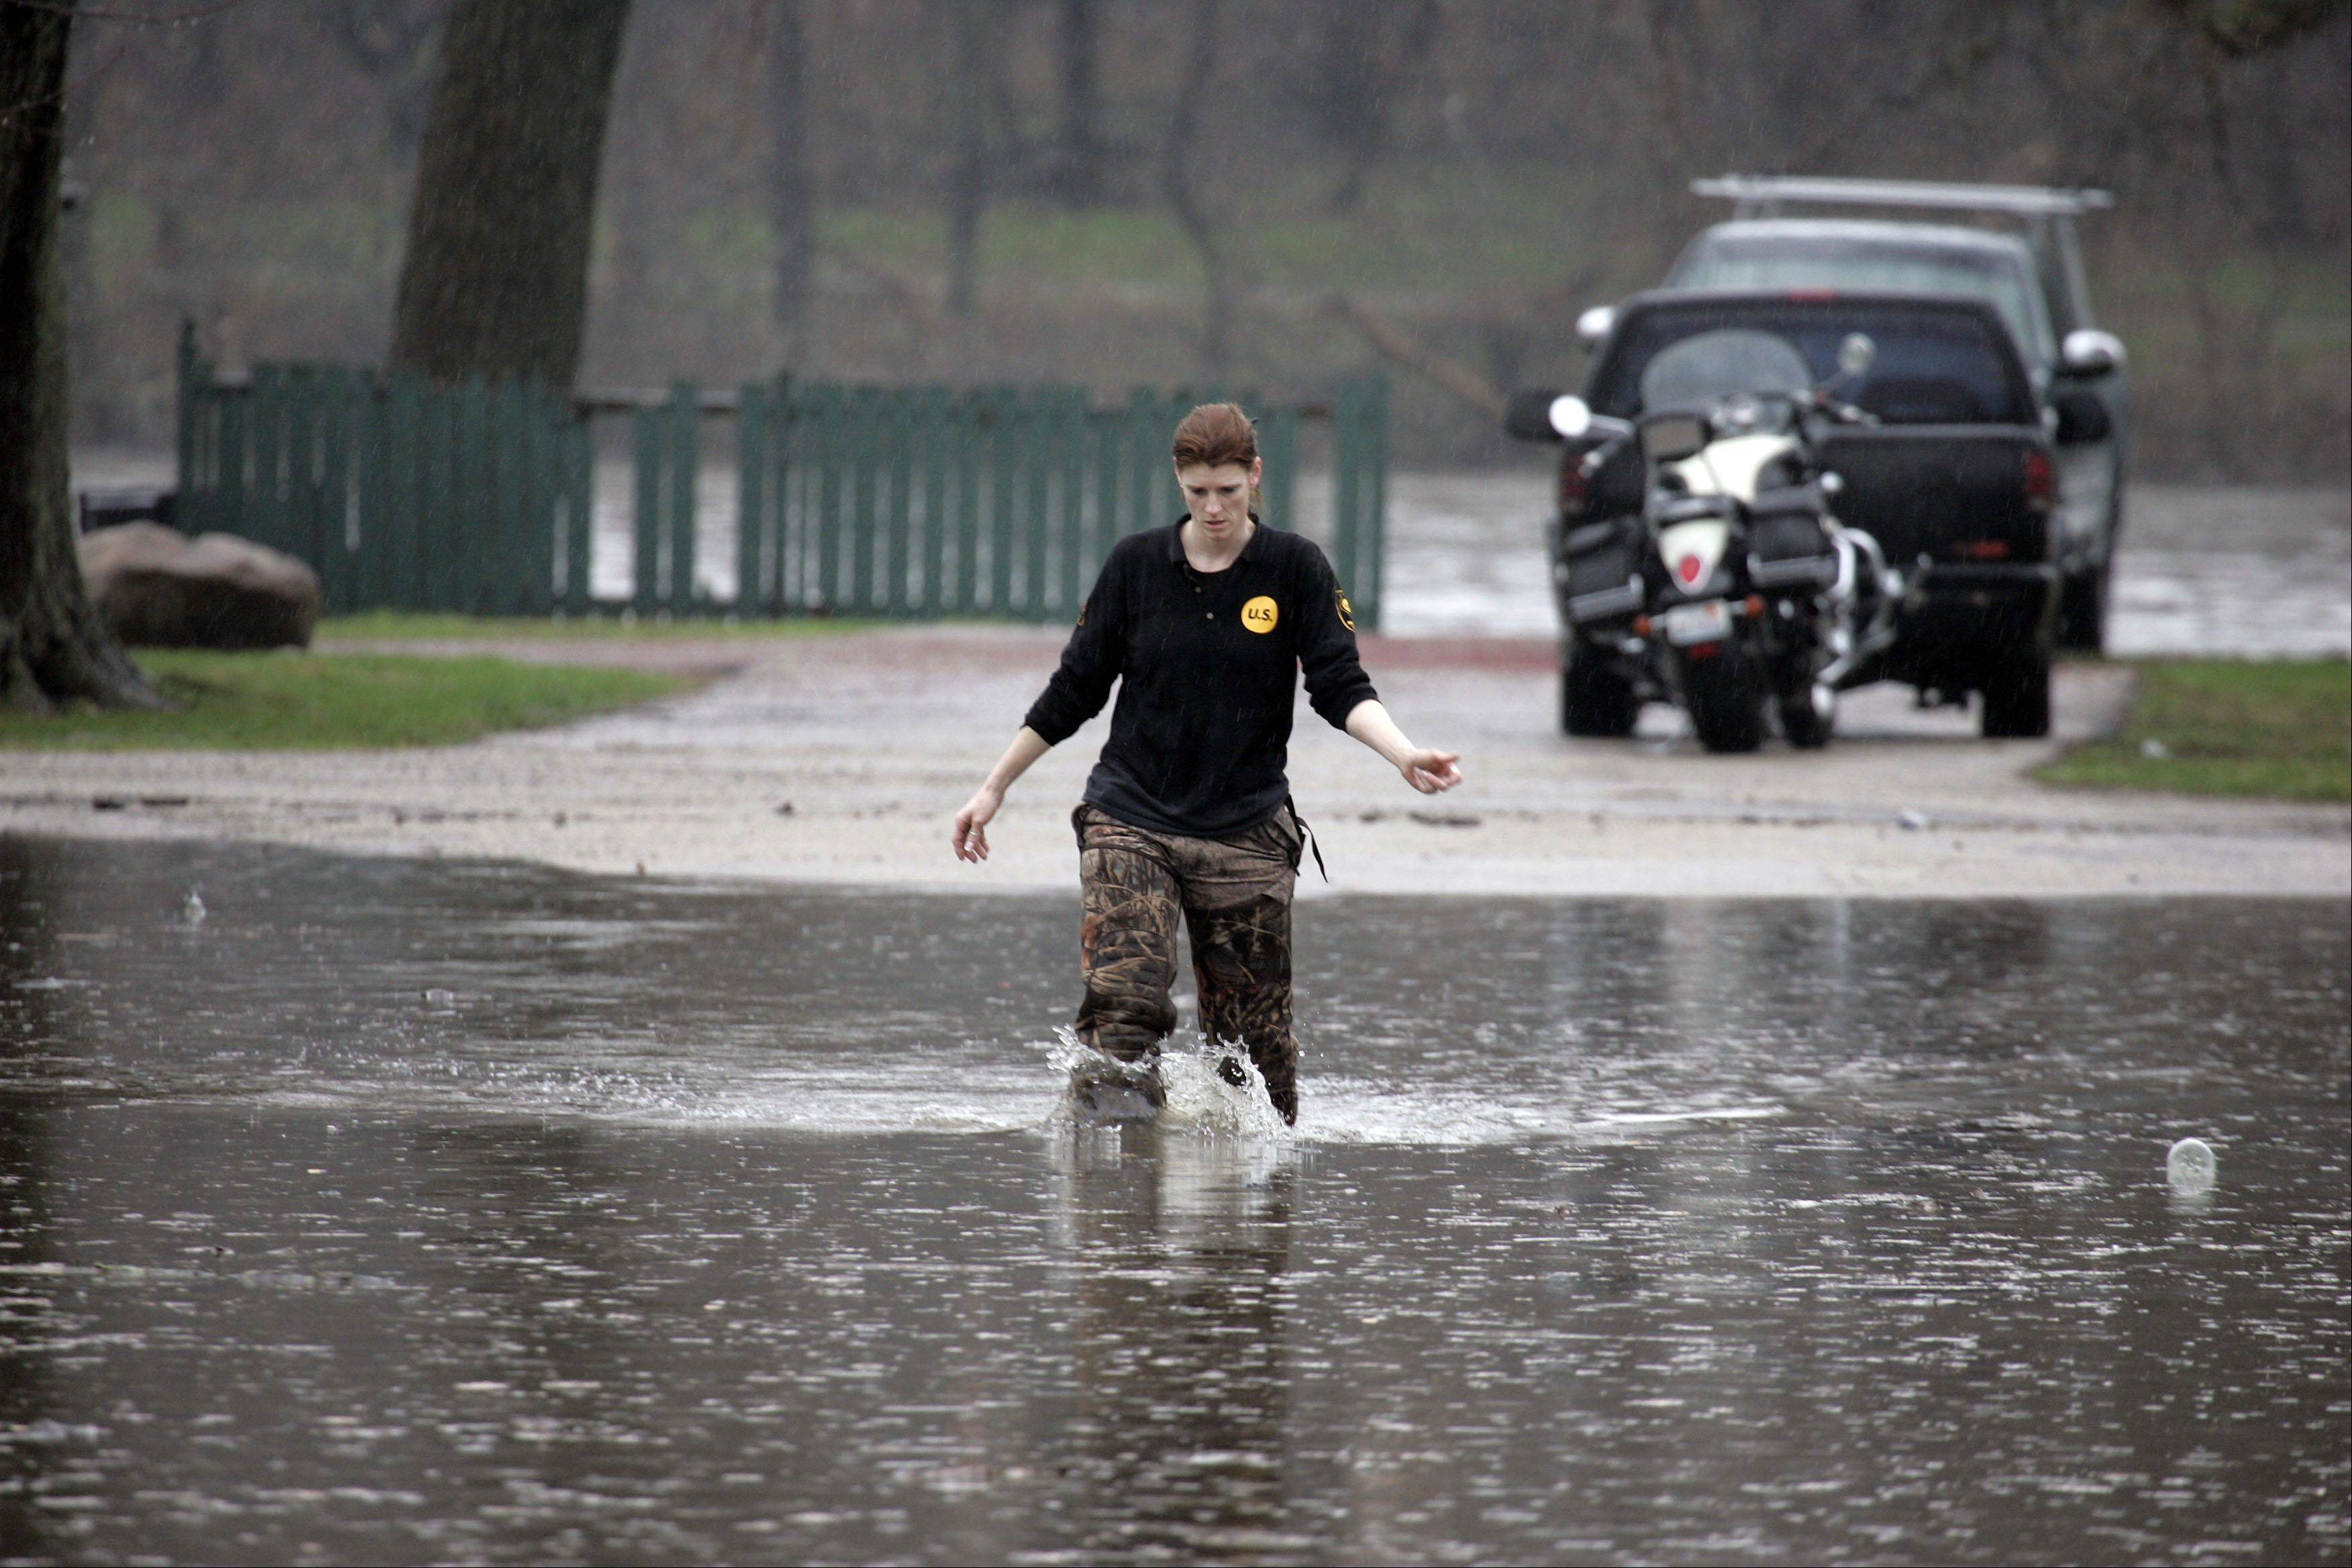 Carrie Wolotowsky of South Elgin wades across a flooded East Spring Street to get to her vehicle during April flooding on the Fox River in South Elgin.